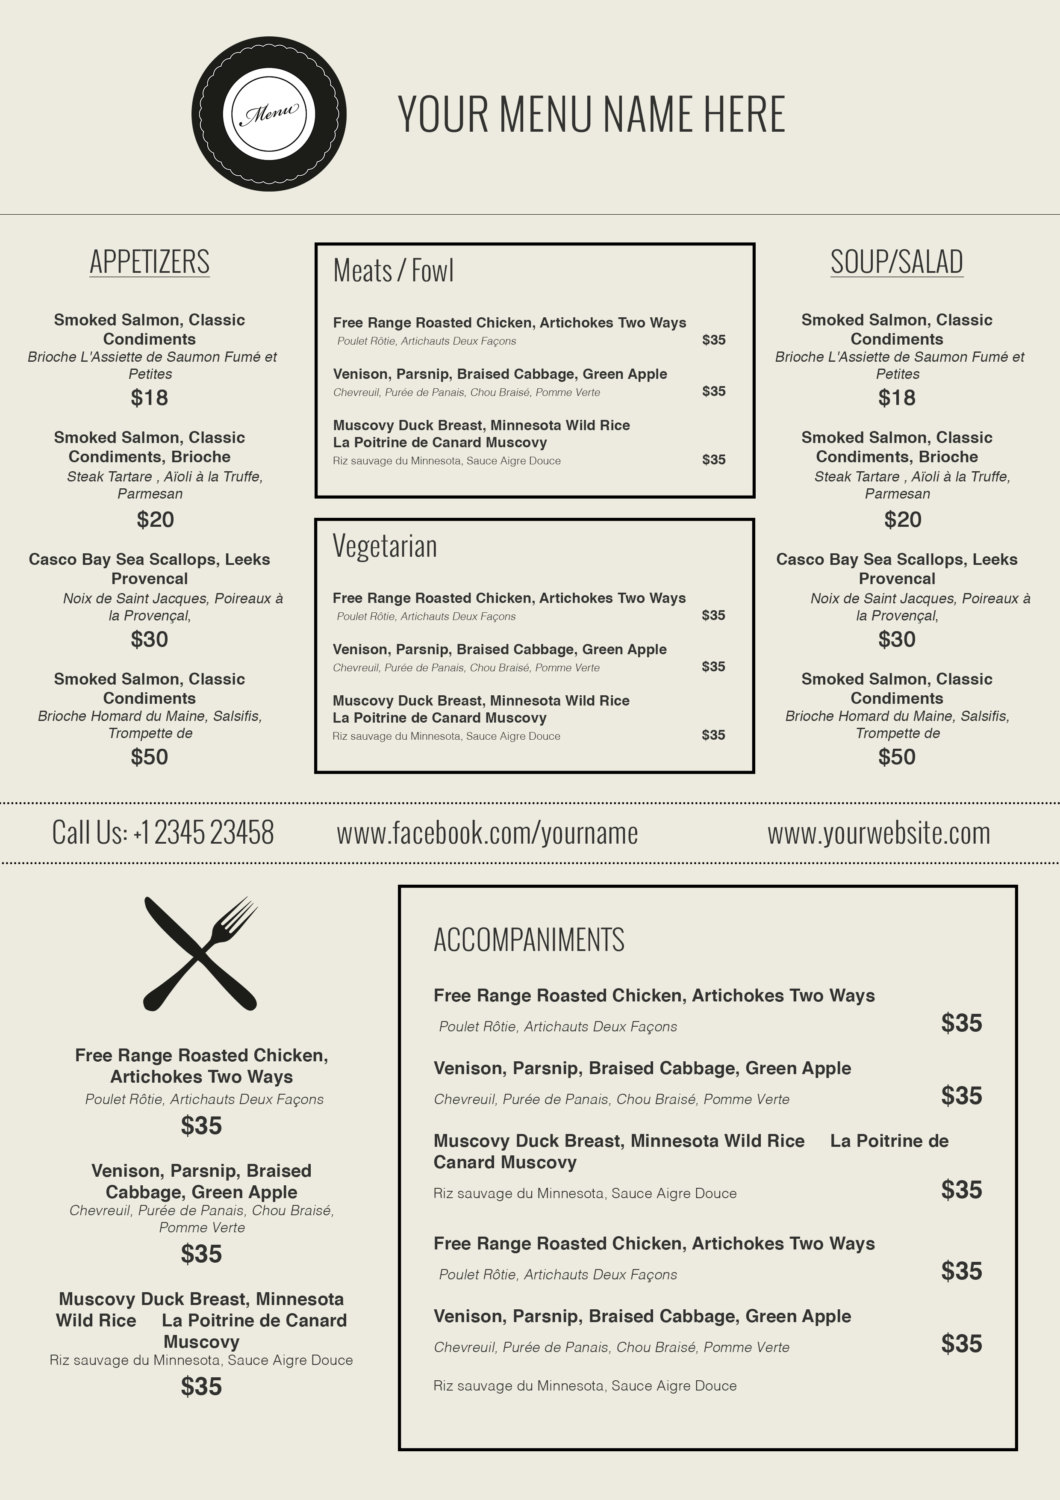 Good Word Restaurant Menu Template Regard To How To Make A Food Menu On Microsoft Word